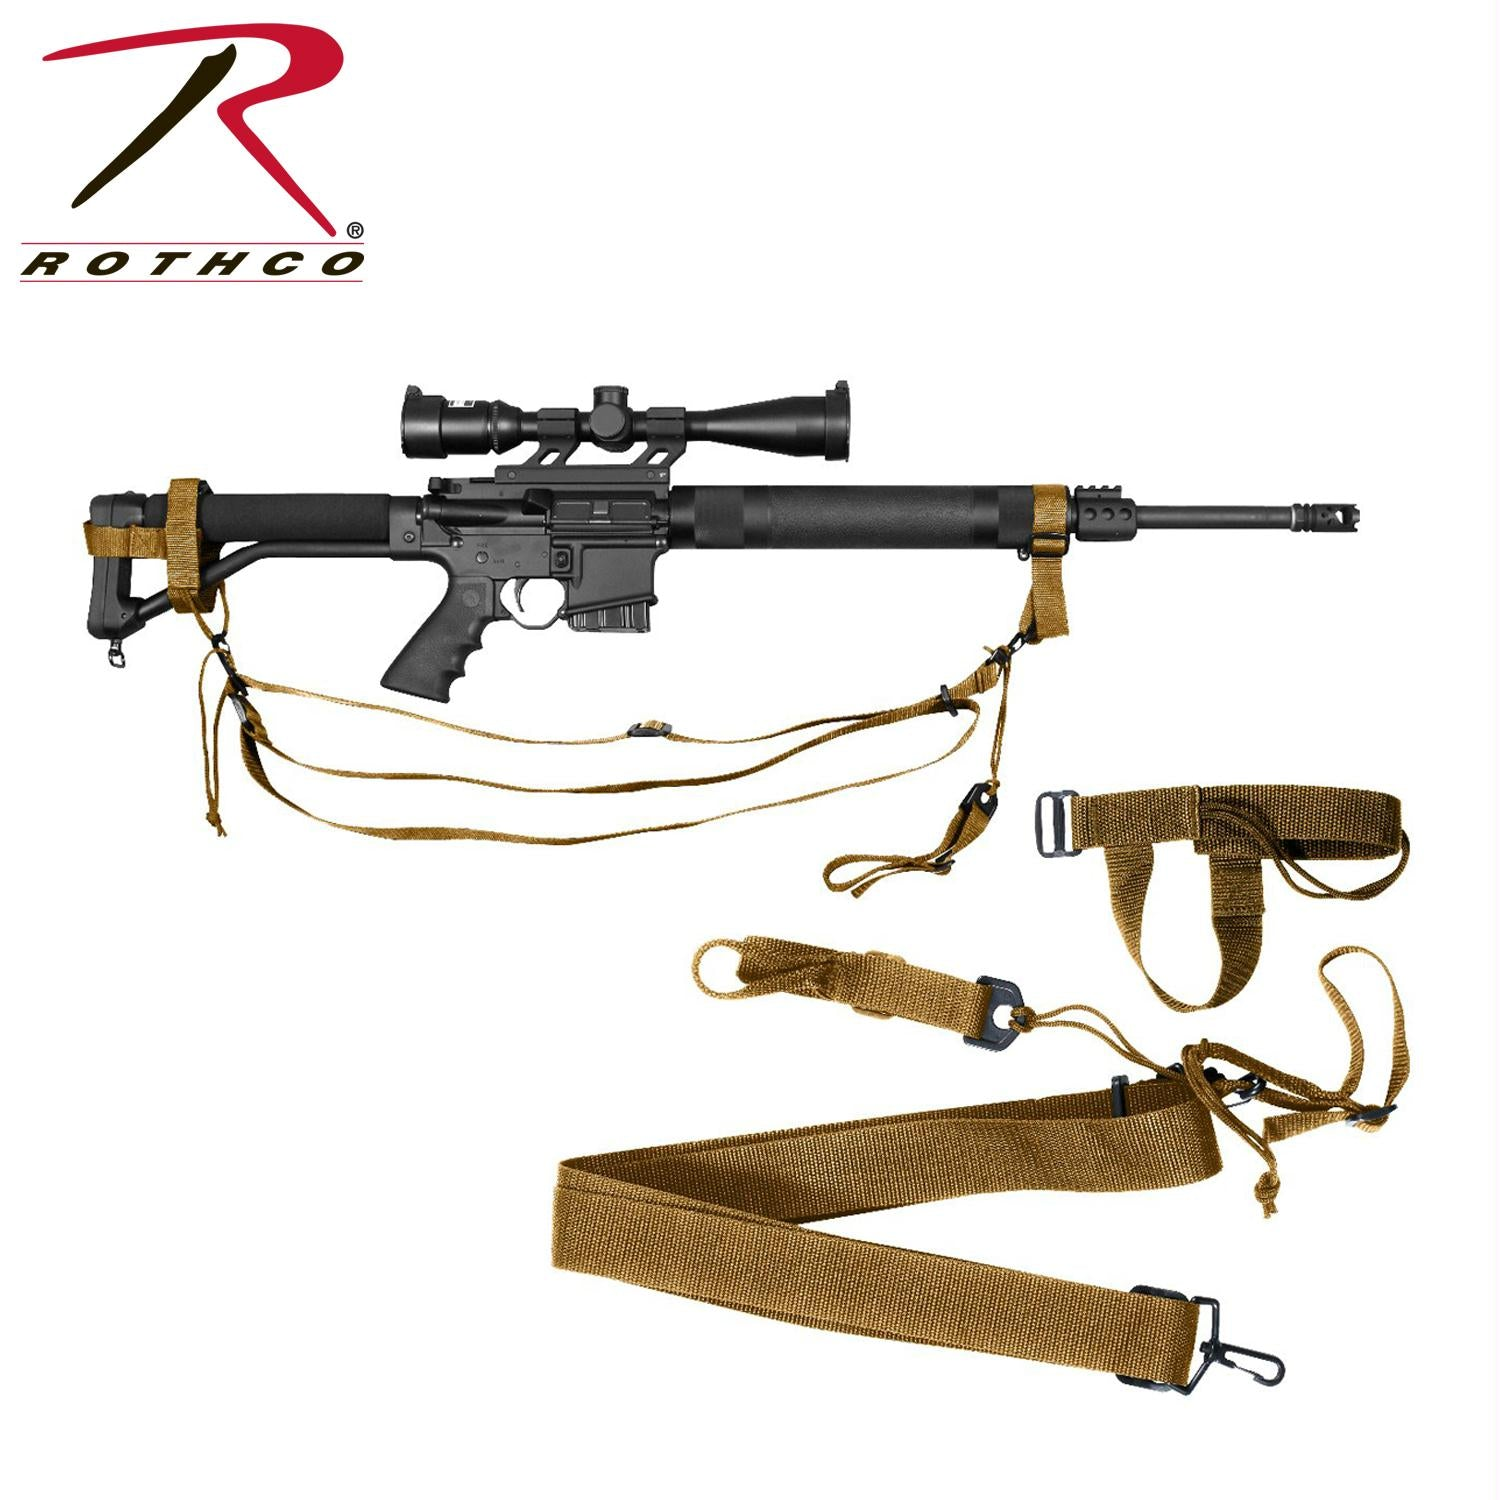 Rothco Military 3-point Rifle Sling - Coyote Brown